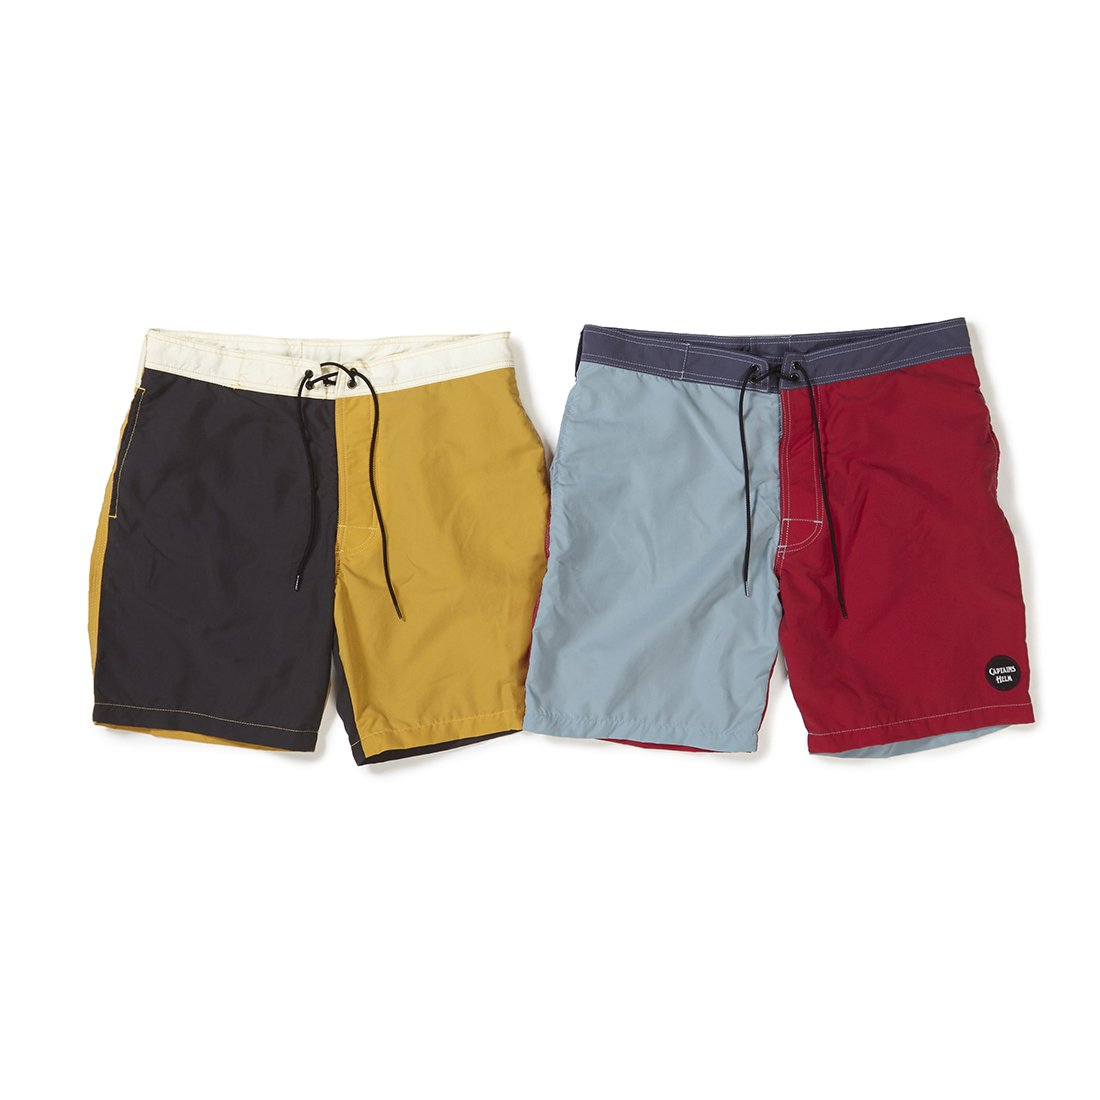 CAPTAINS HELM #CONTRAST PANEL BOARD SHORTS